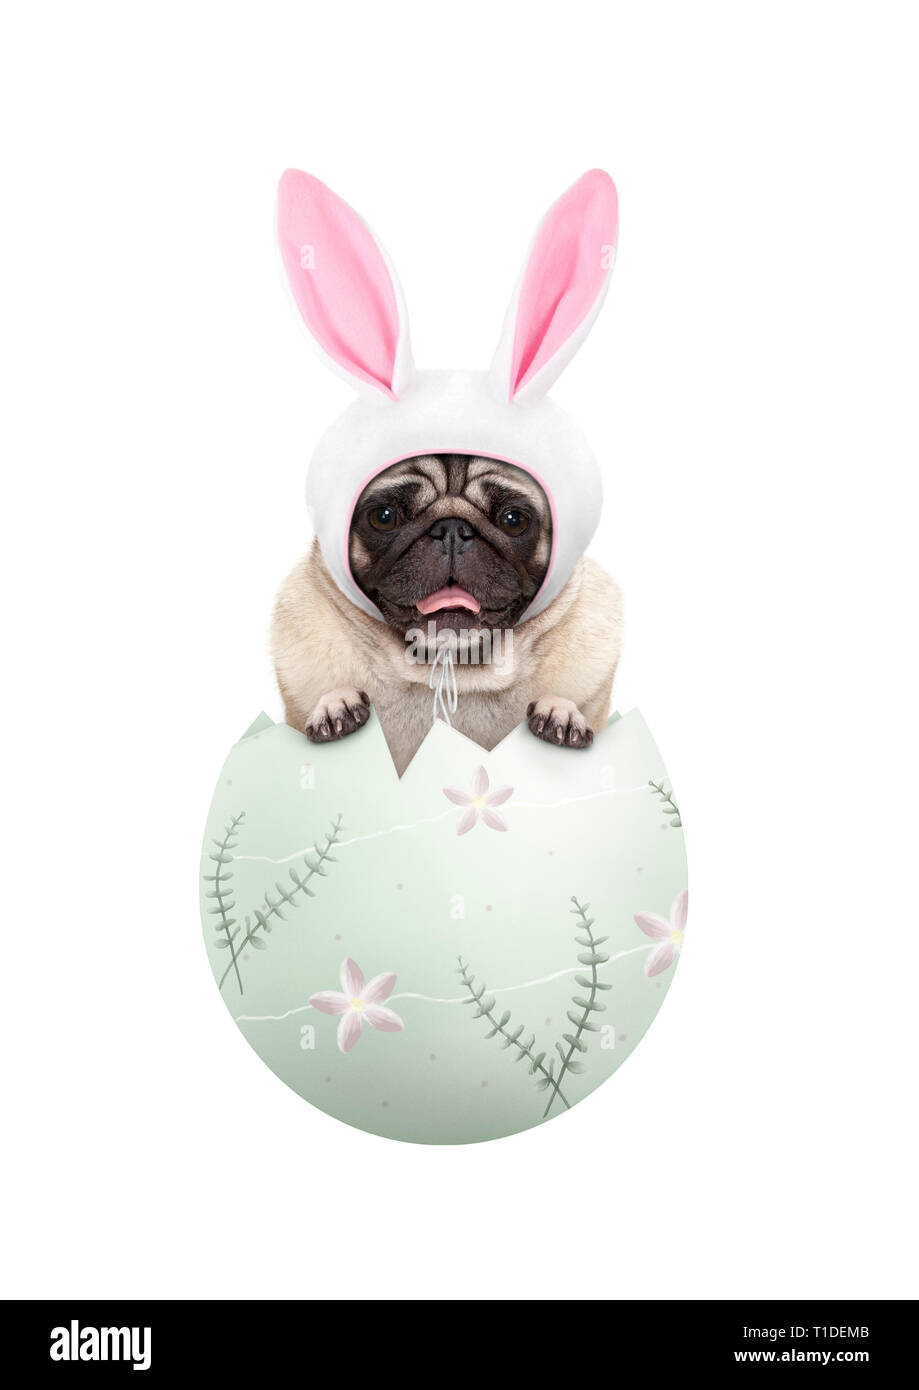 funny cute  pug puppy dog wearing bunny ears, sitting in pastel green easter egg, isolated on white background Stock Photo